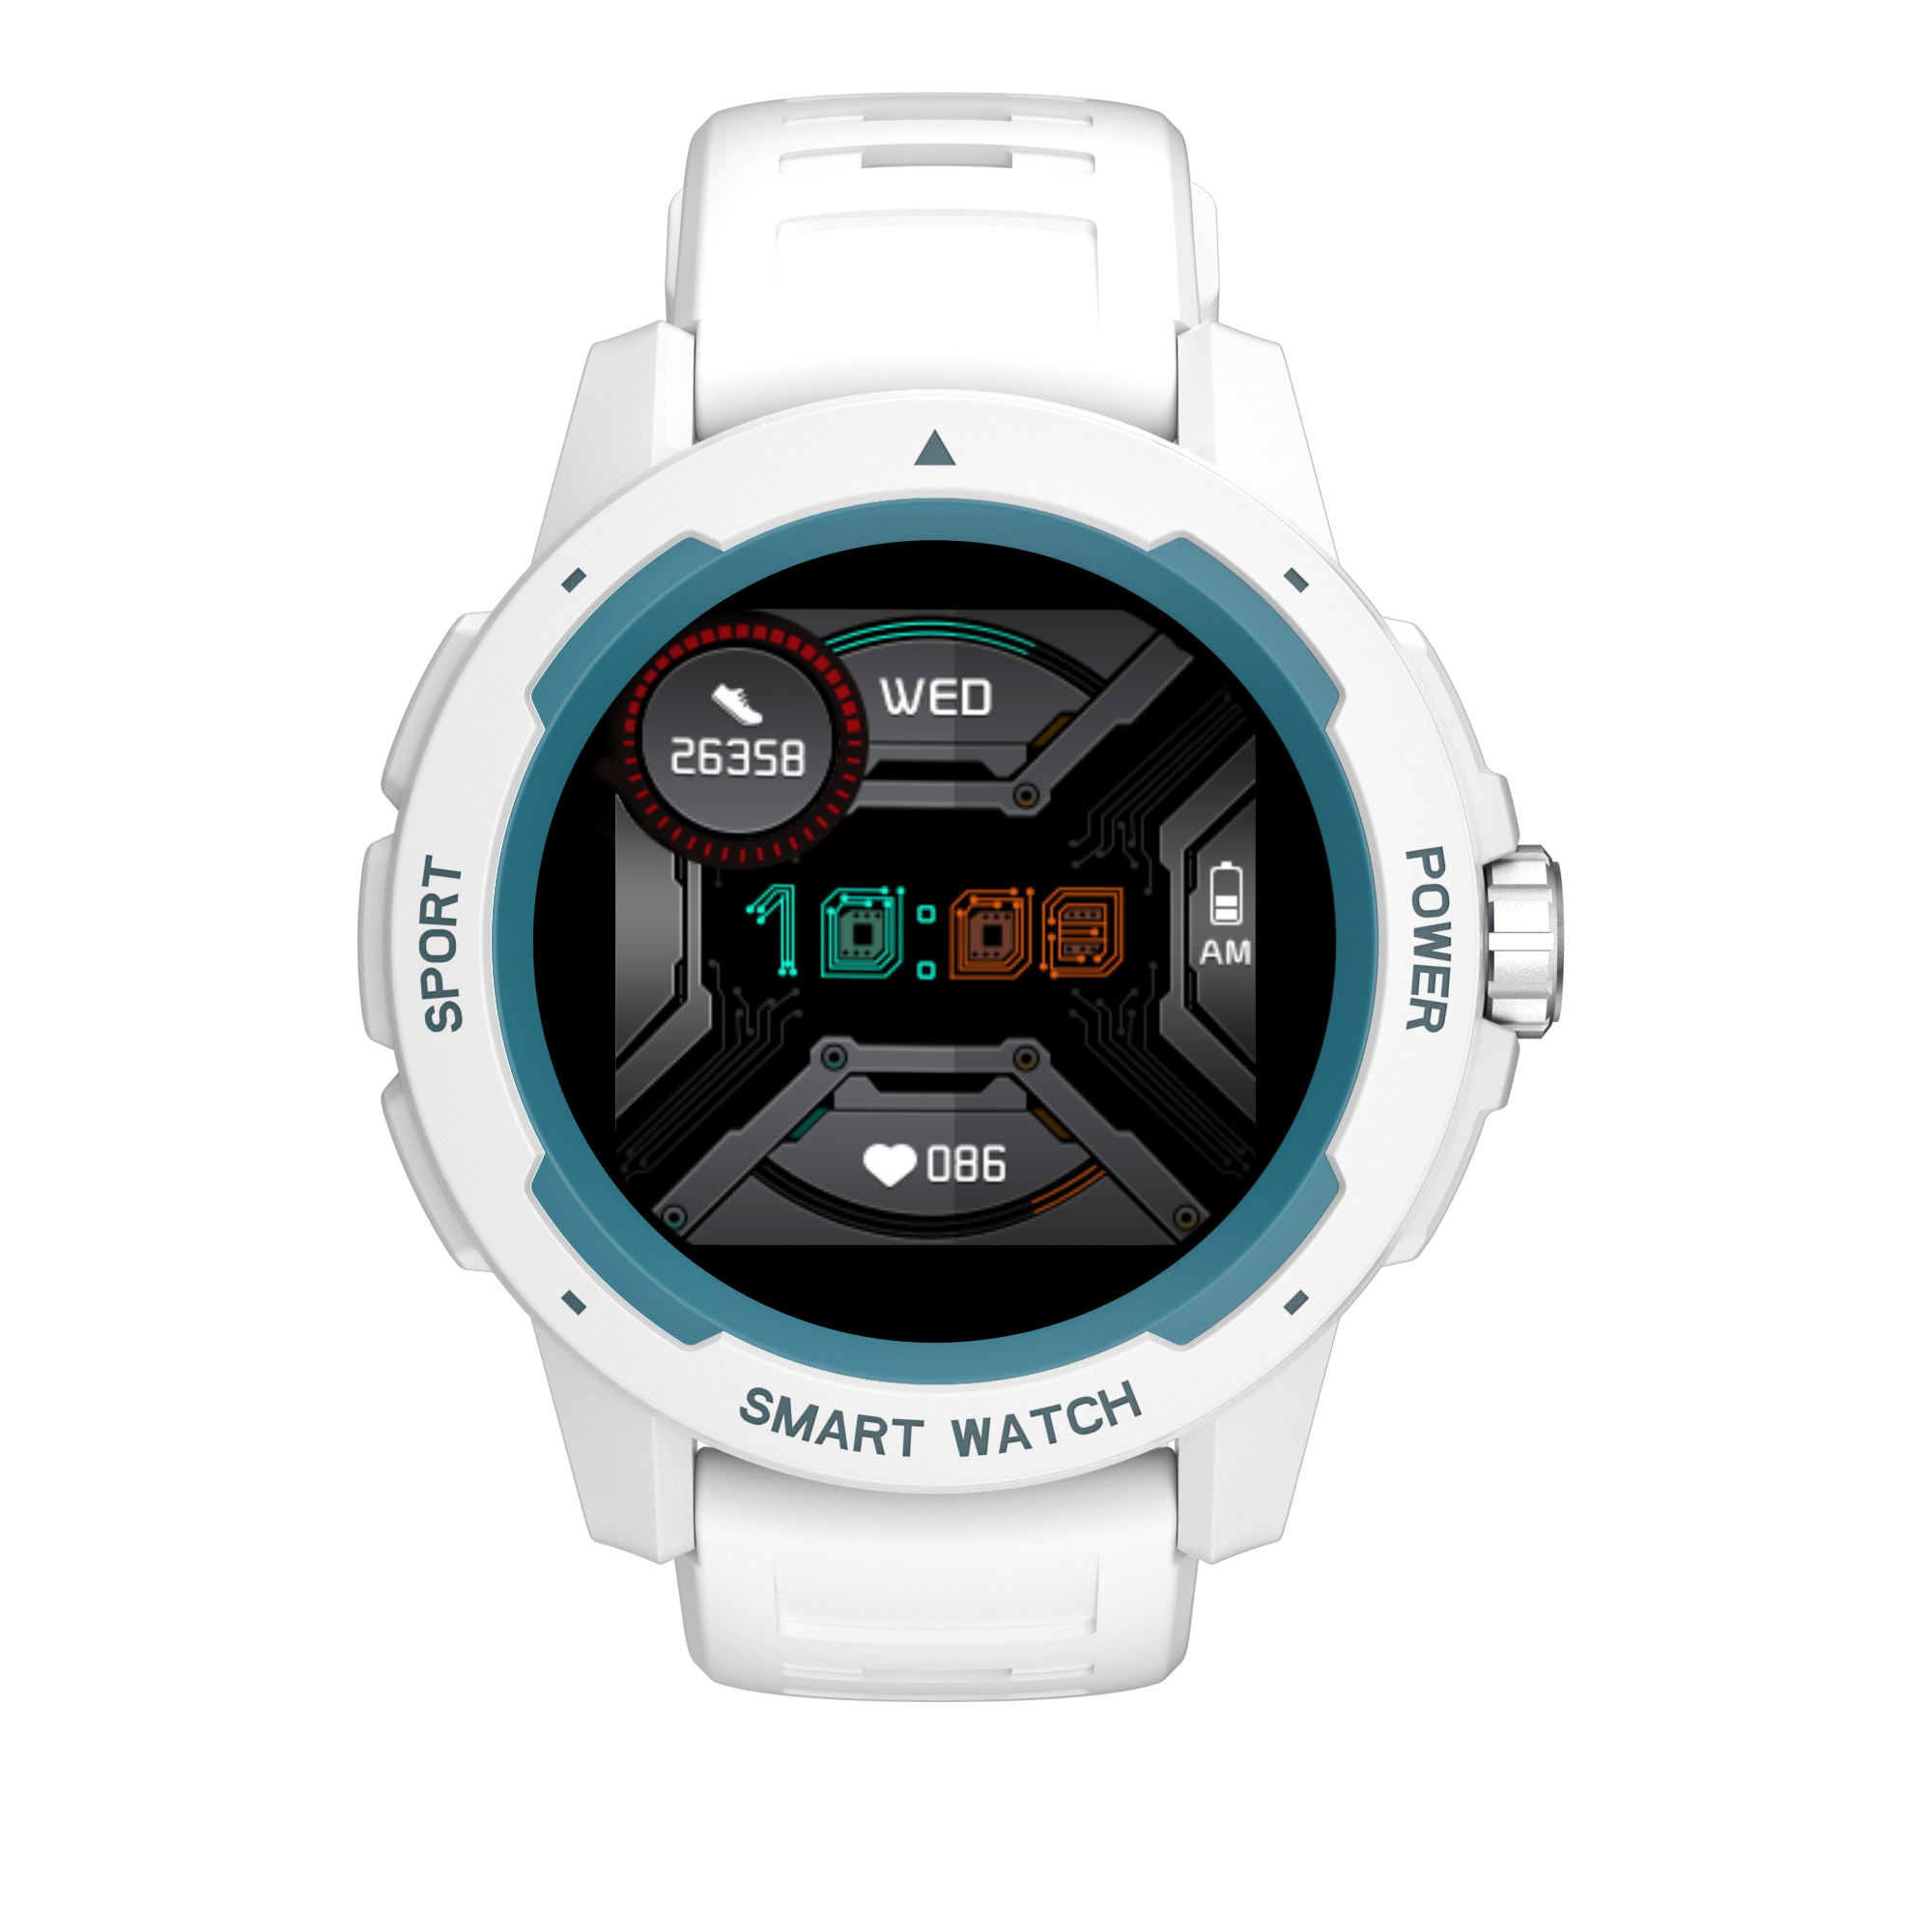 Smart watch full touch large screen IP68 waterproof fashion watch pedometer heart rate exercise mode information weather